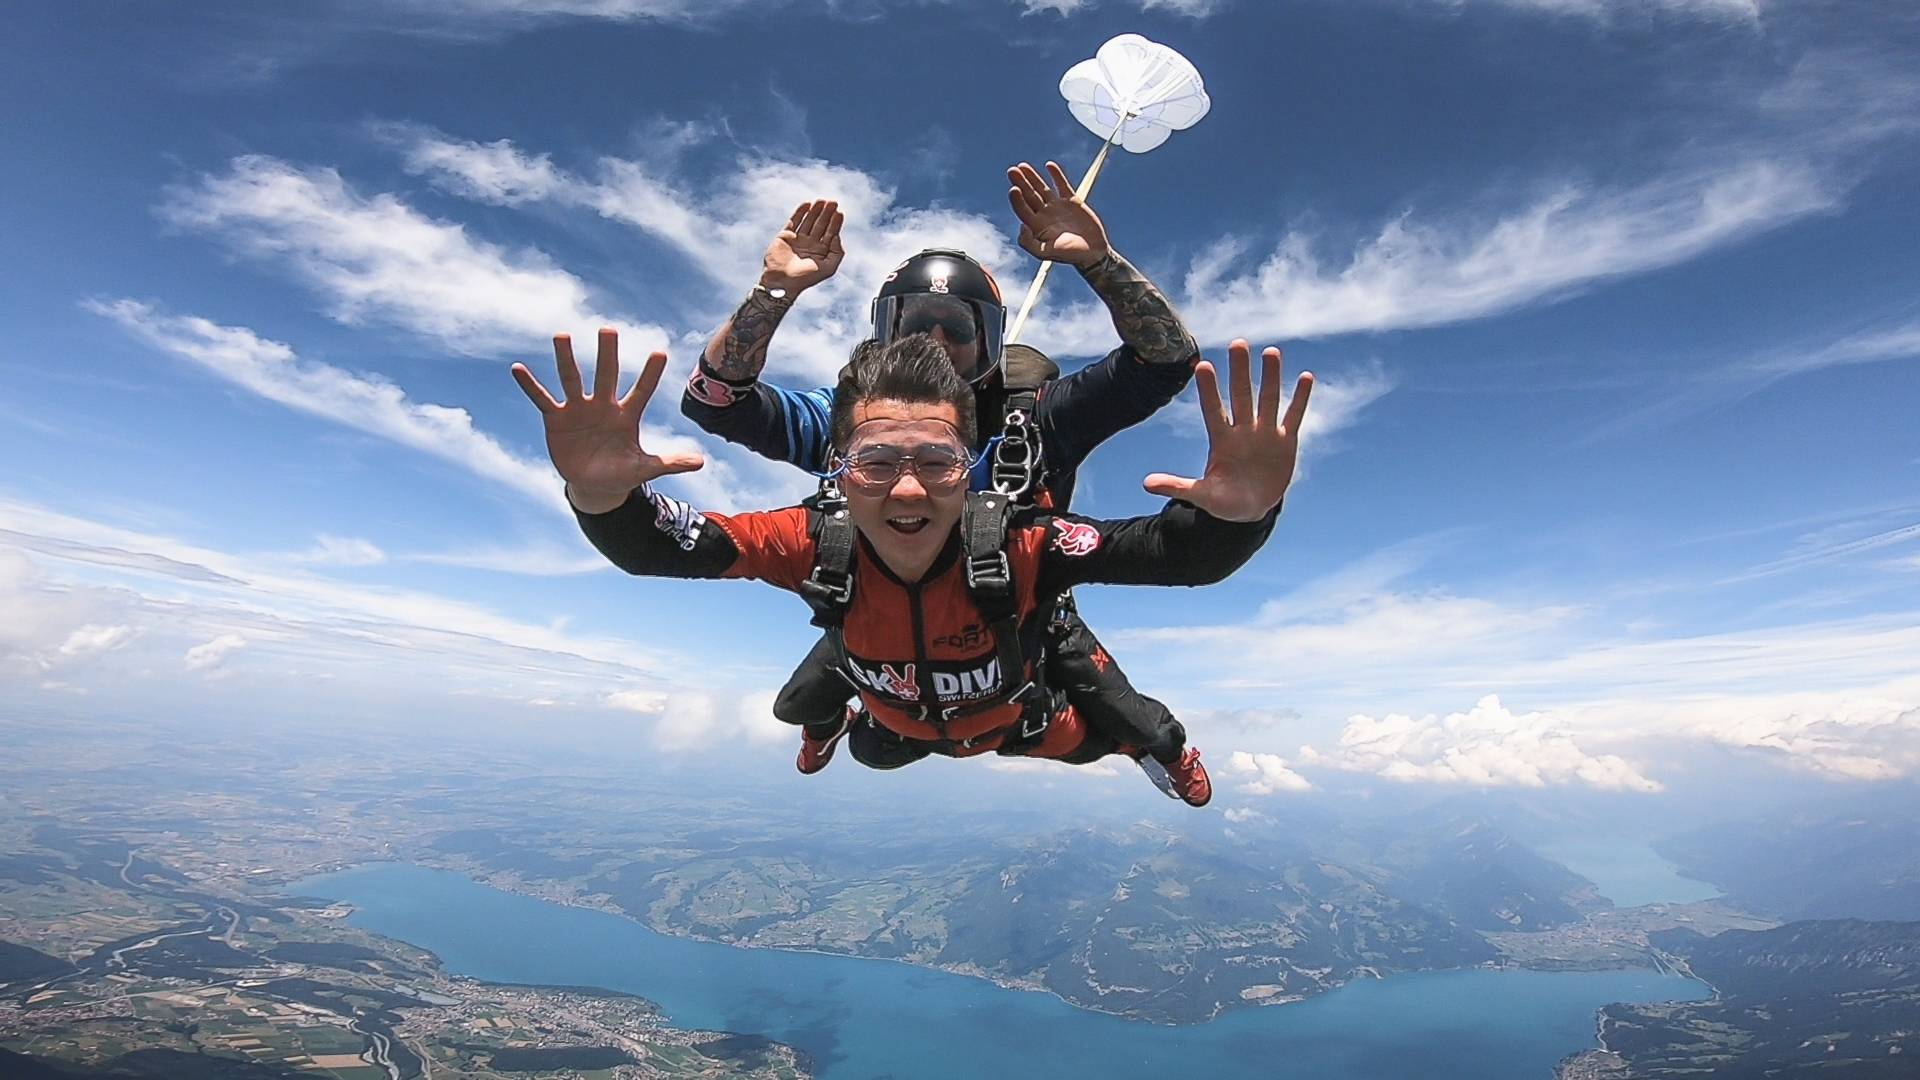 Airplane Skydiving - Paragliding Interlaken